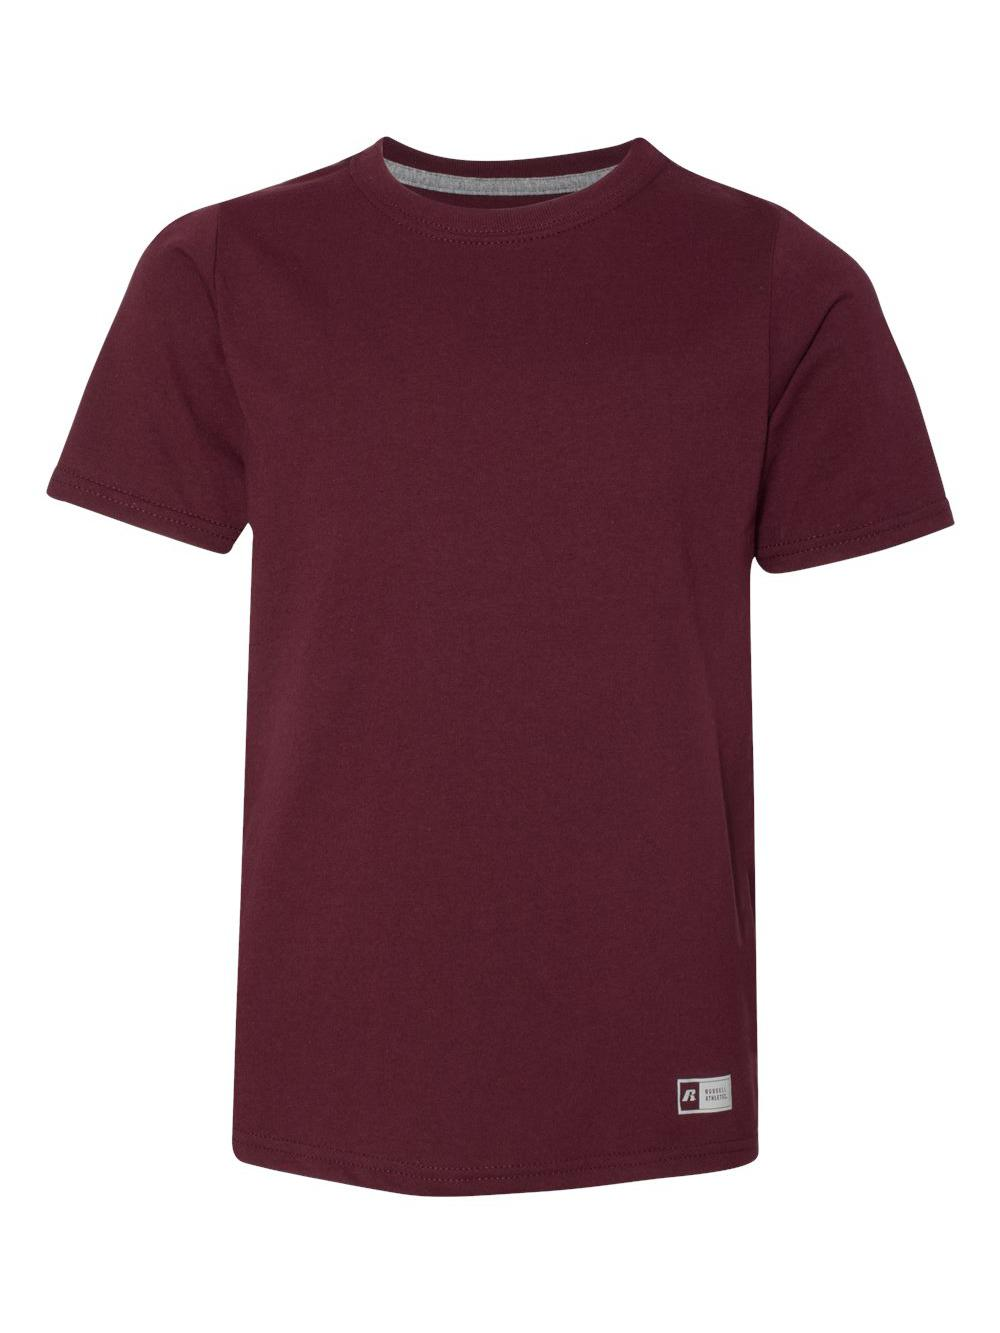 dd600c19 Russell Athletic Big Boys' Essential Short Sleeve Tee Maroon L. About this  product. Picture 1 of 4; Picture 2 of 4 ...